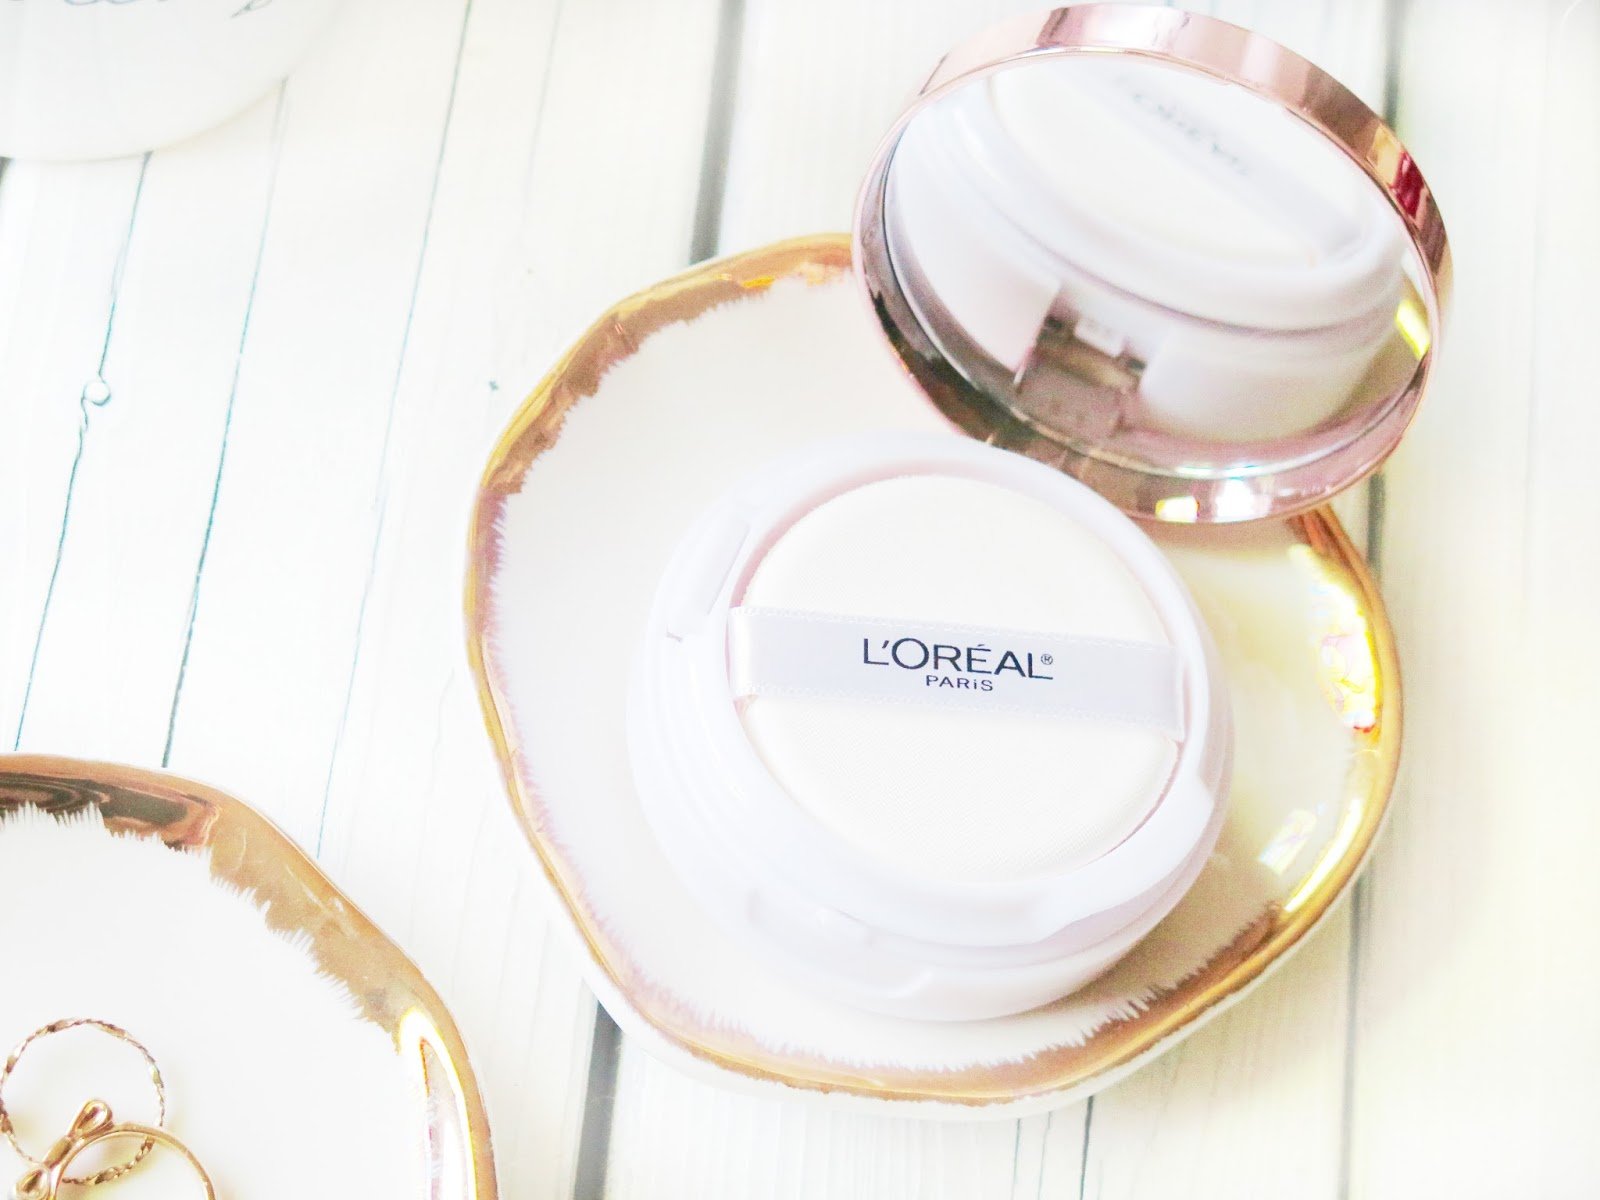 NEW | L'oreal True Match Lumi Cushion Foundation | Review & Demo | A Serious Glow Getter | labellesirene.ca